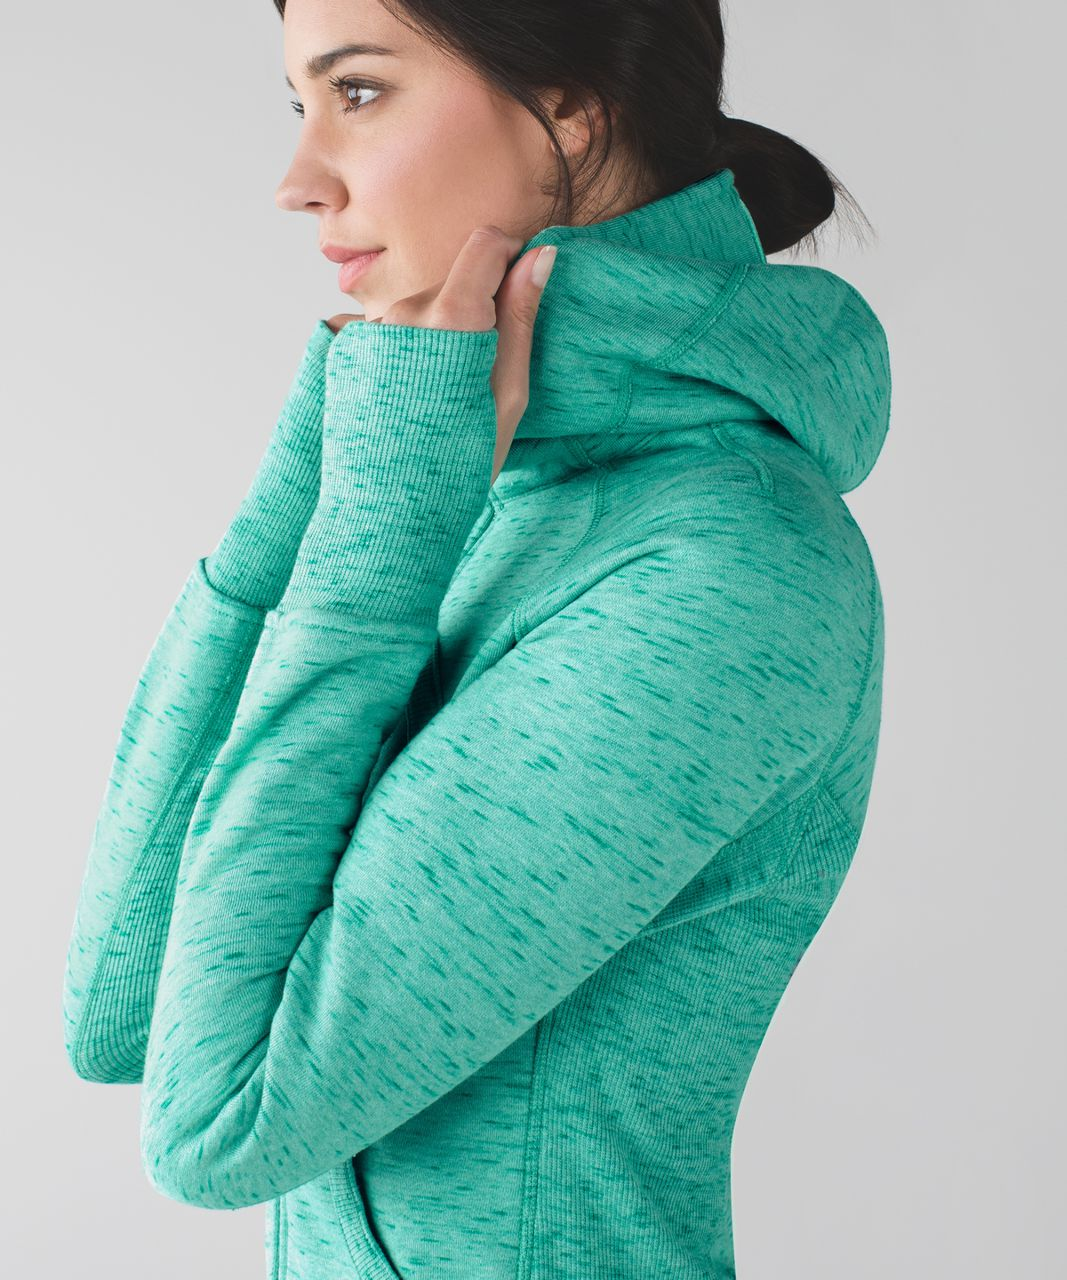 Lululemon Scuba Hoodie II - Heathered Rainforest Menthol